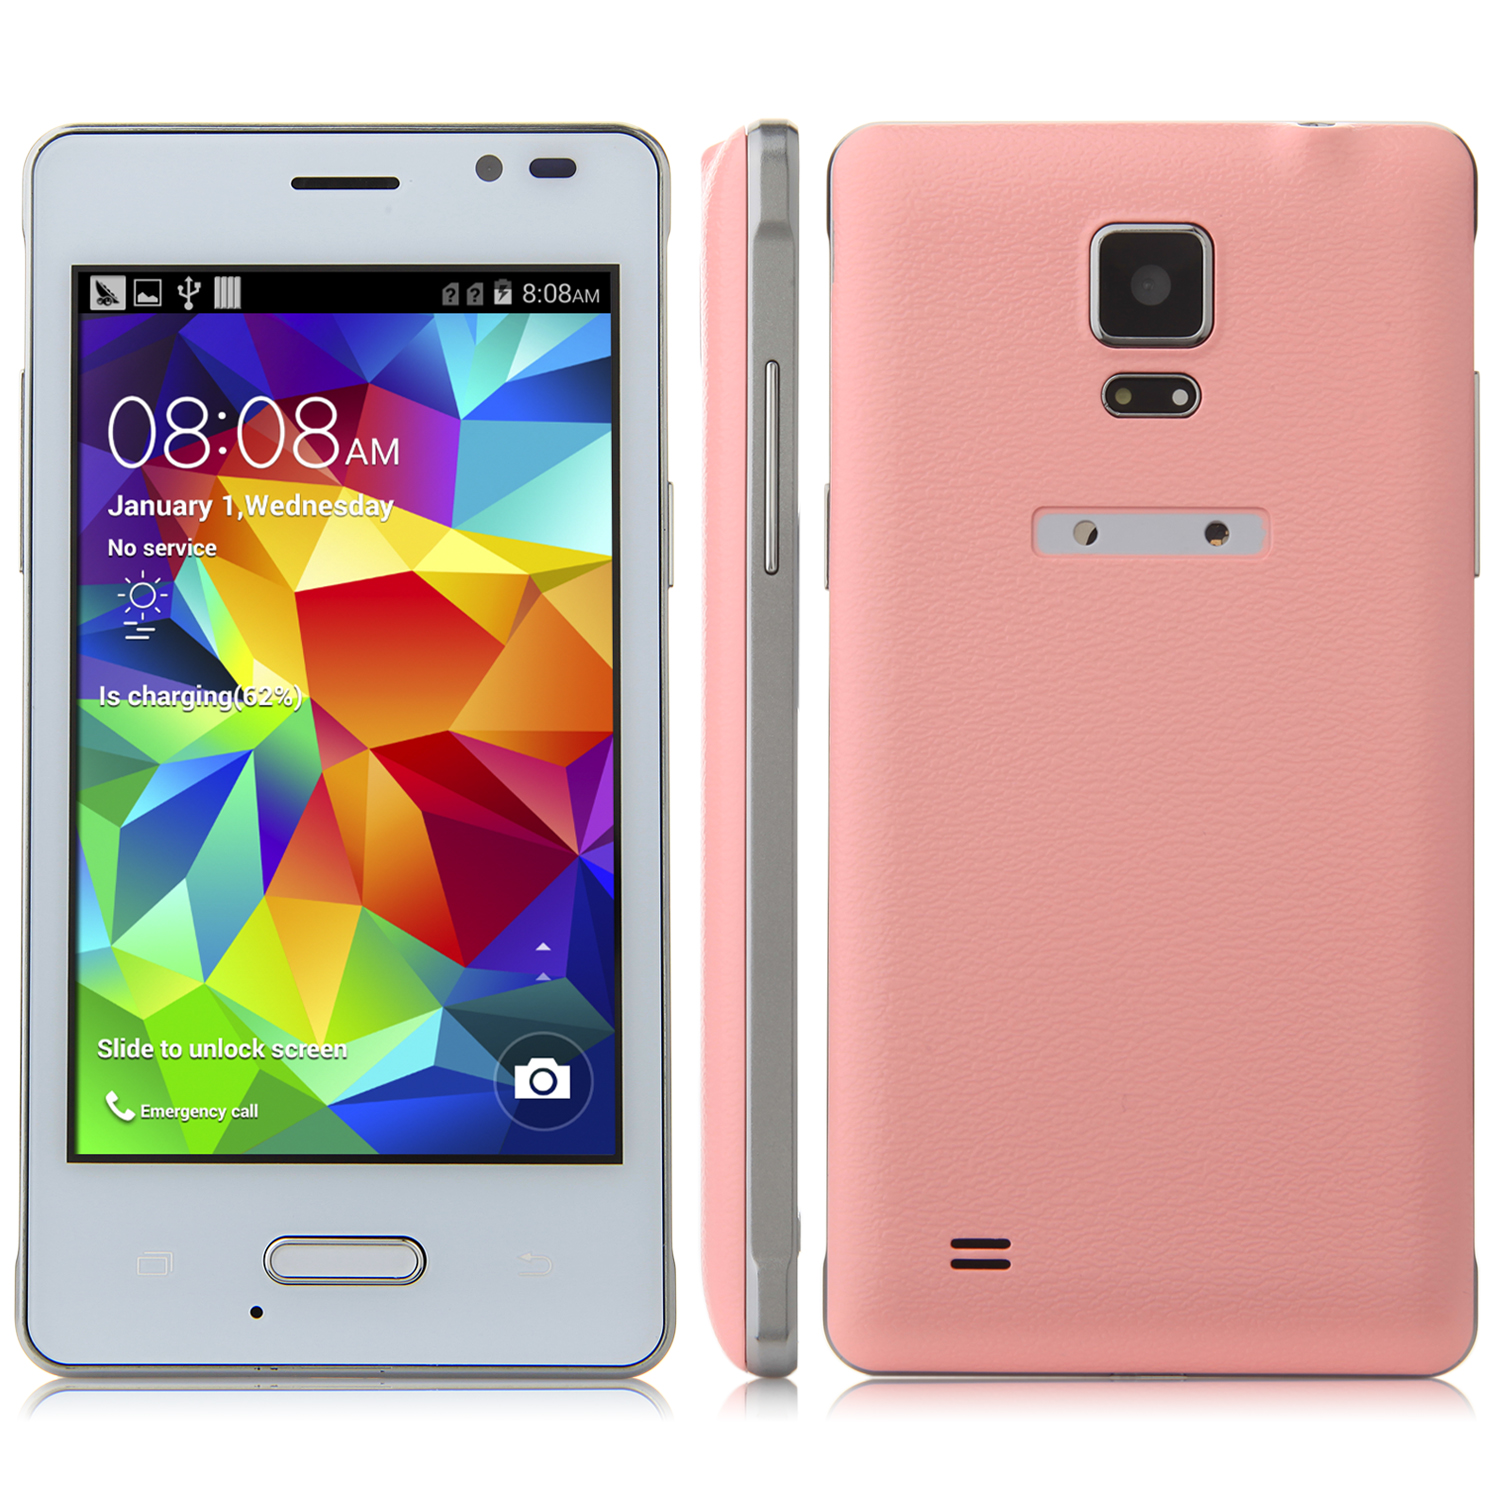 Tengda Q6 Smartphone Android 4.4 MTK6572 3G 4.0 Inch - Pink